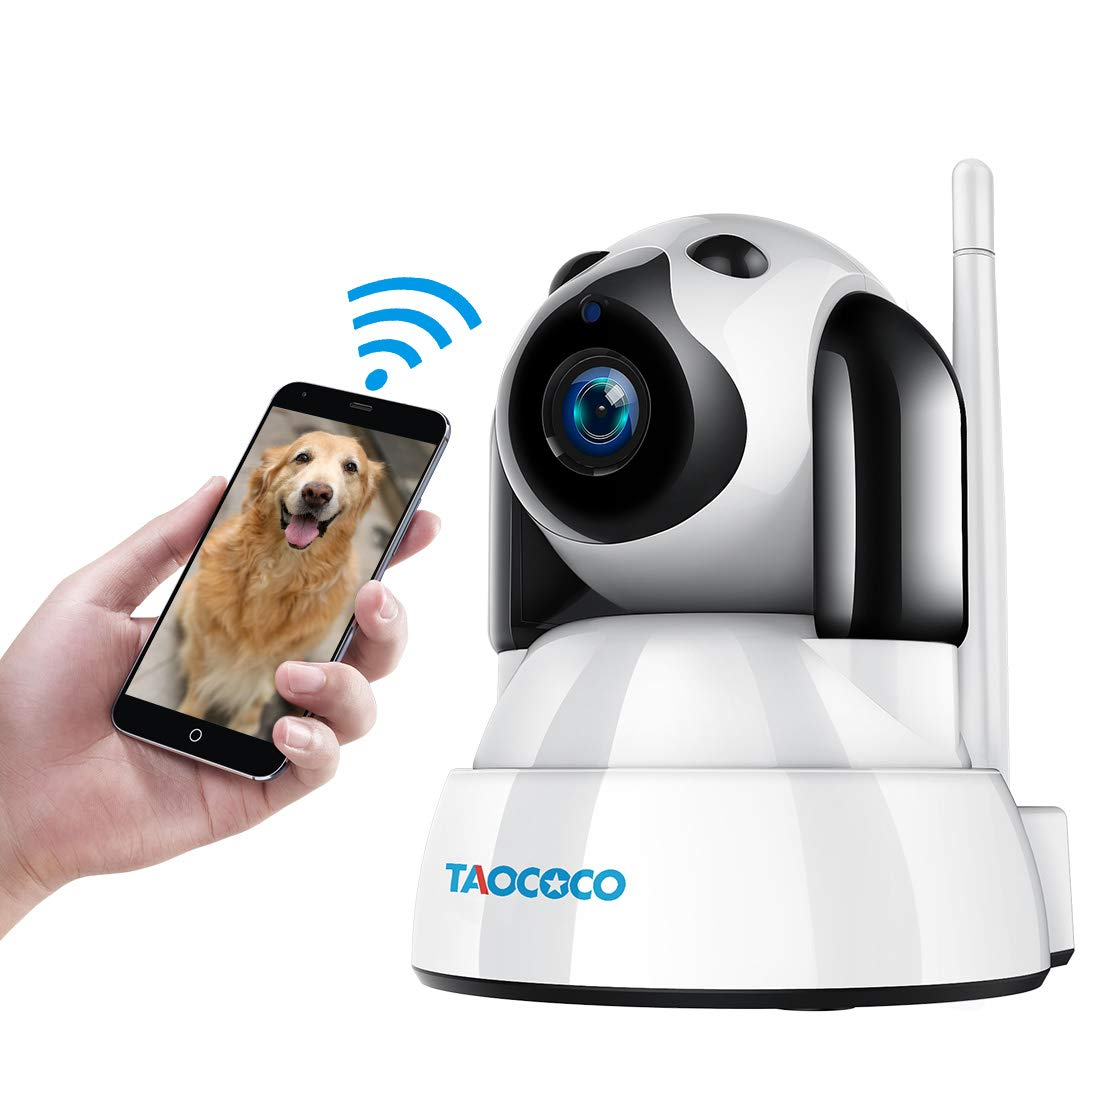 TAOCOCO Dog Pet Camera, 720P WiFi IP Camera, Wireless Surveillance Security Camera, Home Baby Monitor Nanny Cam with Smart Pan/Tilt/Zoom, Motion Detection, Two Way Talking, Infrared Night Vision